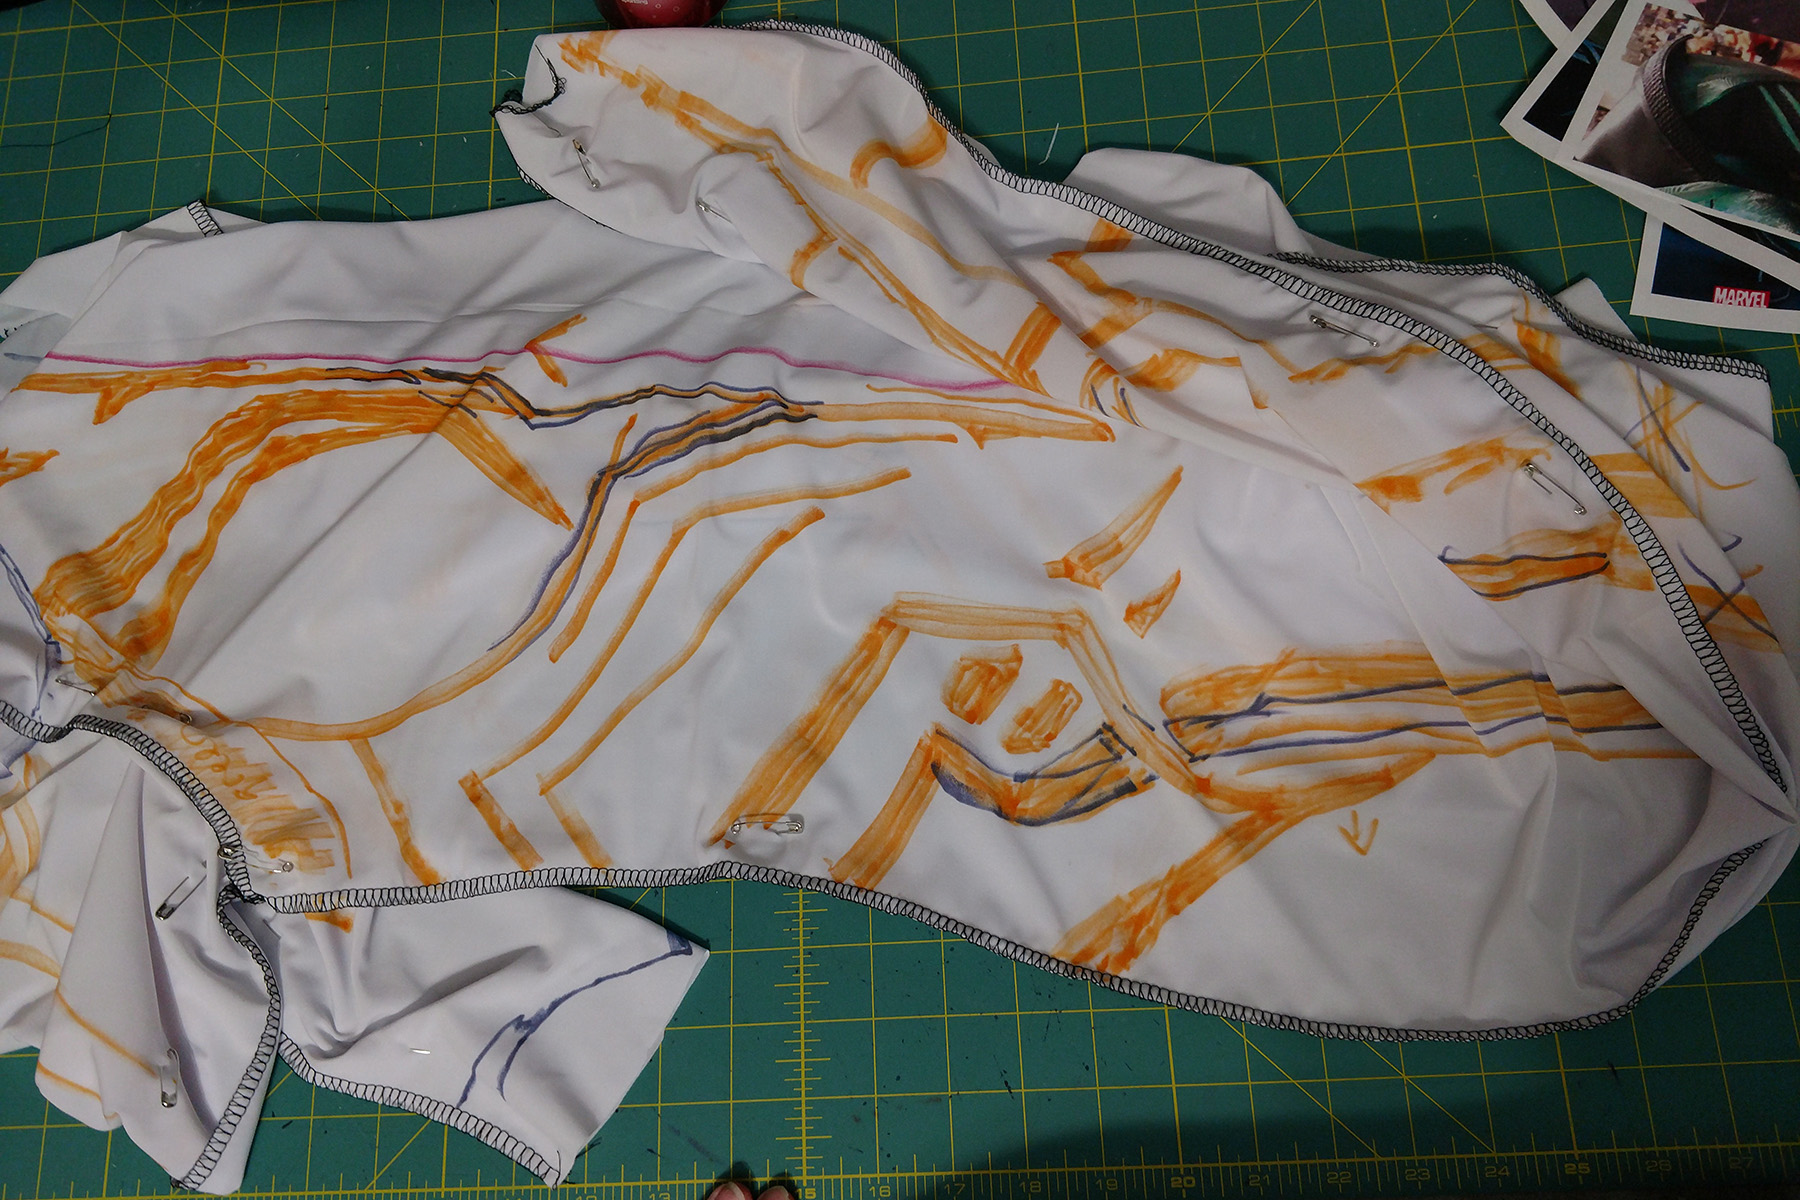 A white bodysuit with orange markings on it, laid out on a green work surface.